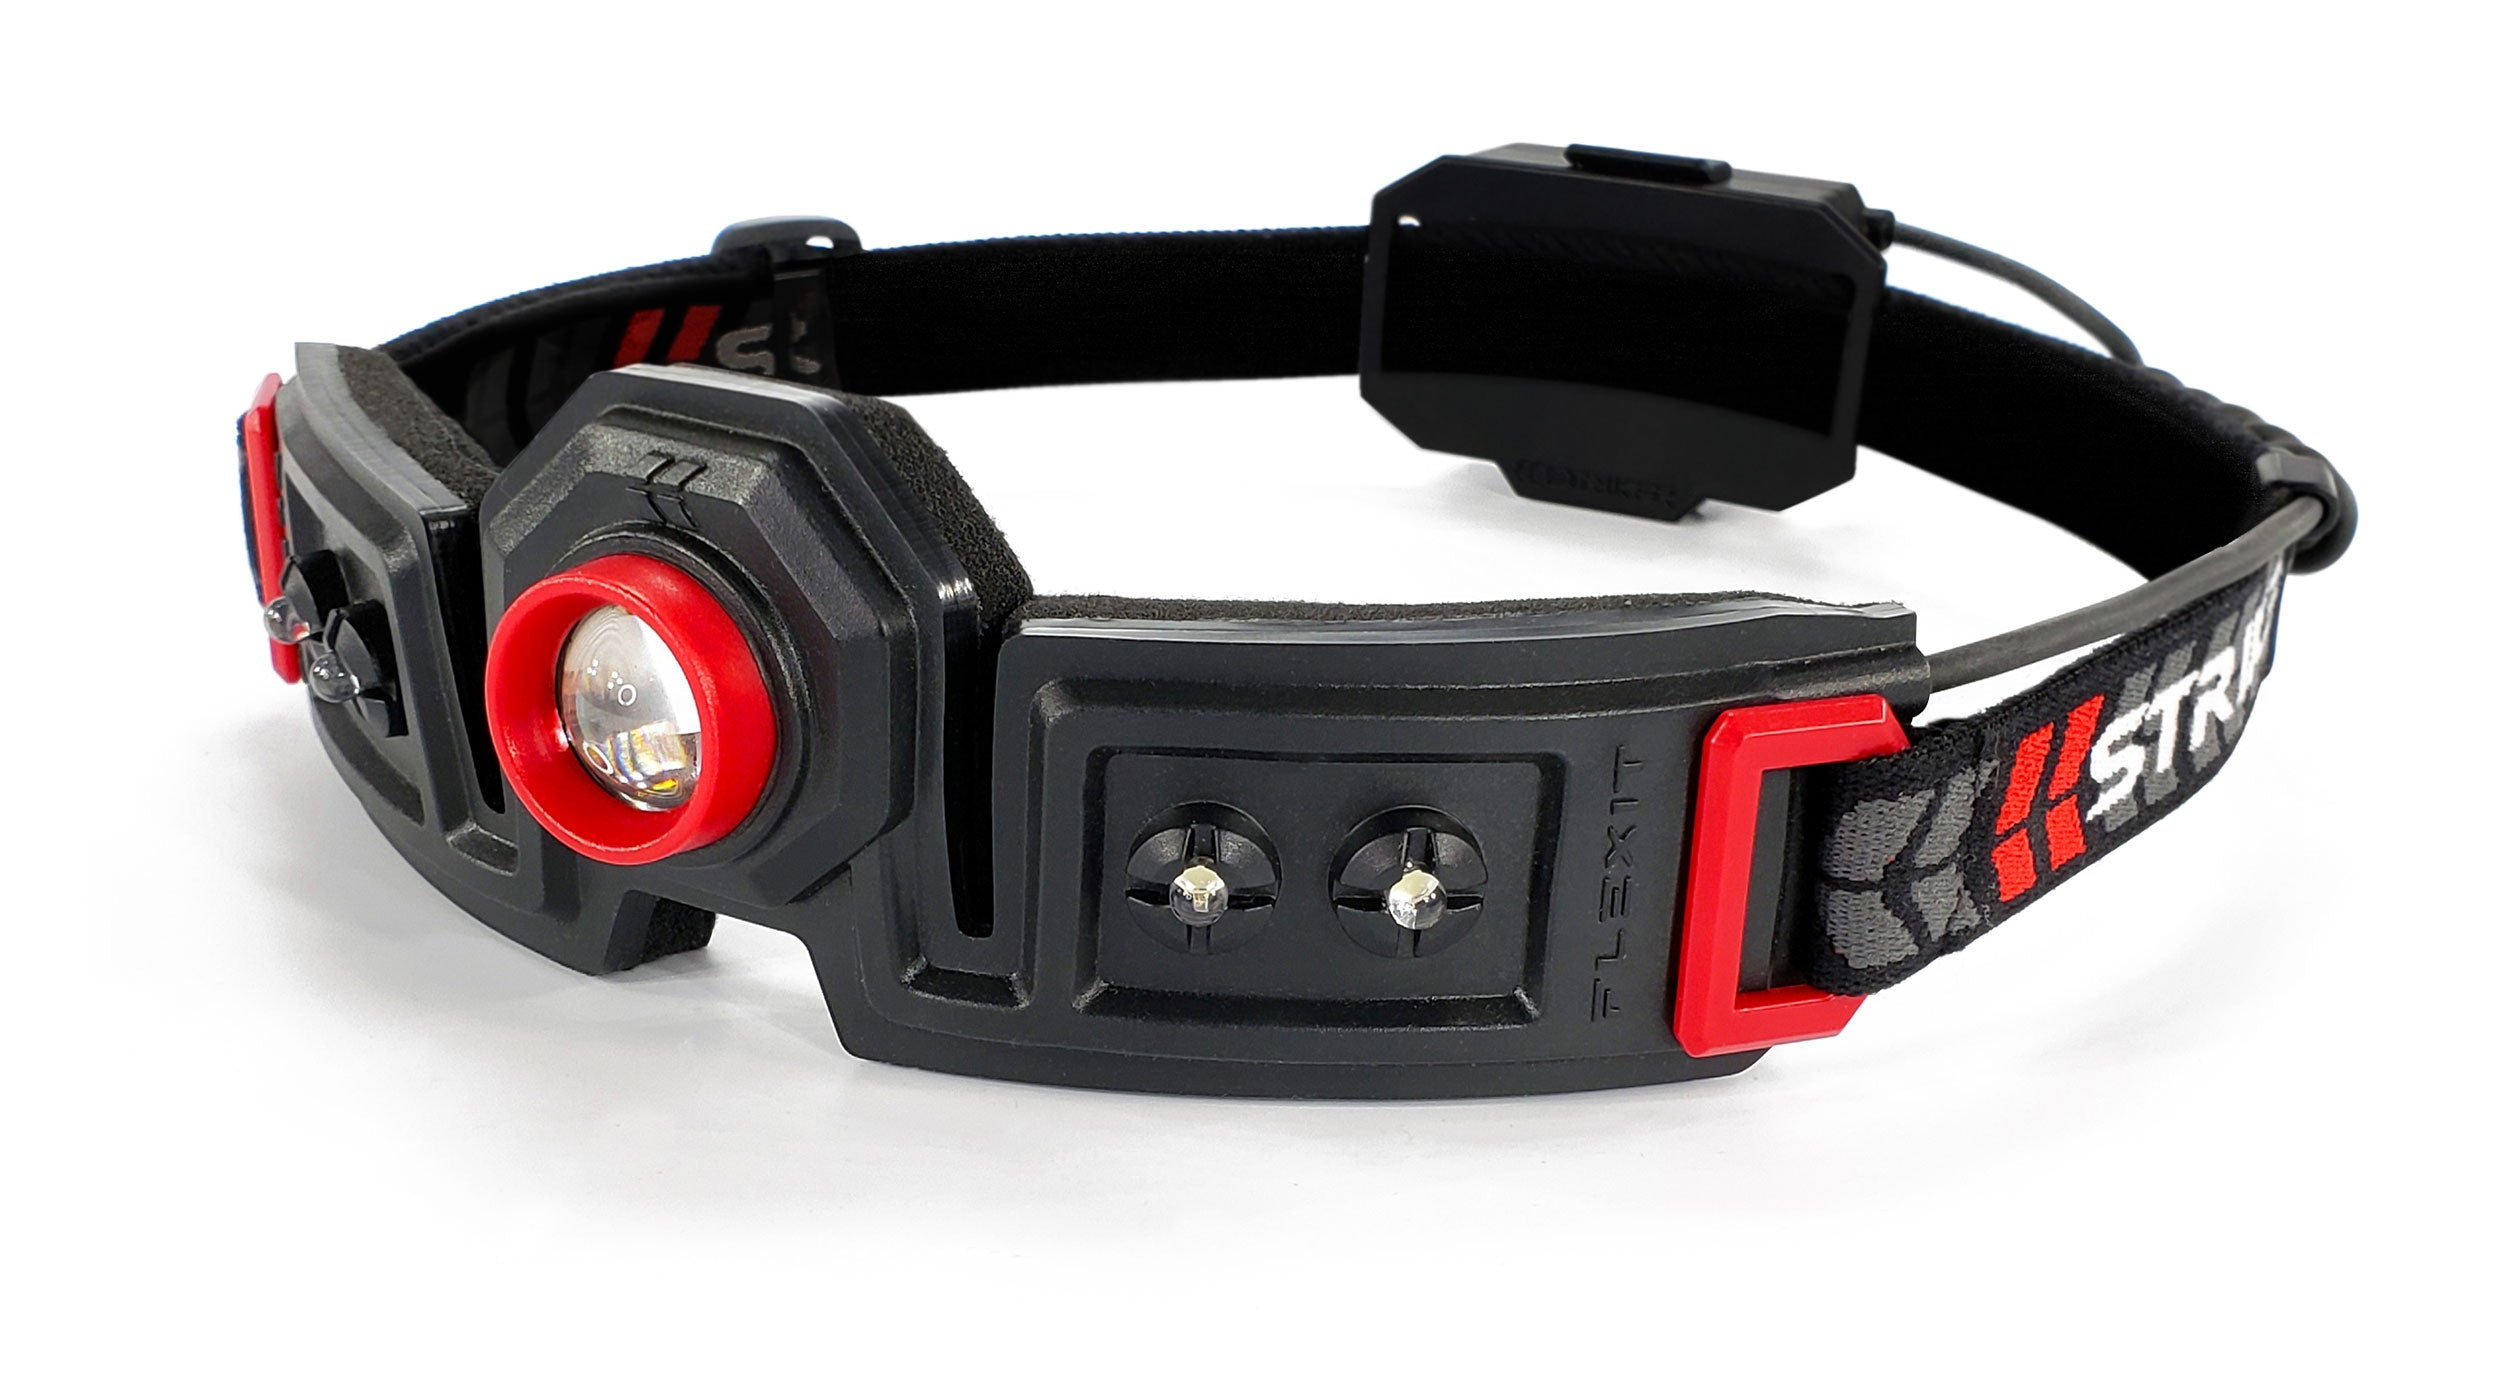 FLEXIT Headlamp 2.5 Flexible Headlamp